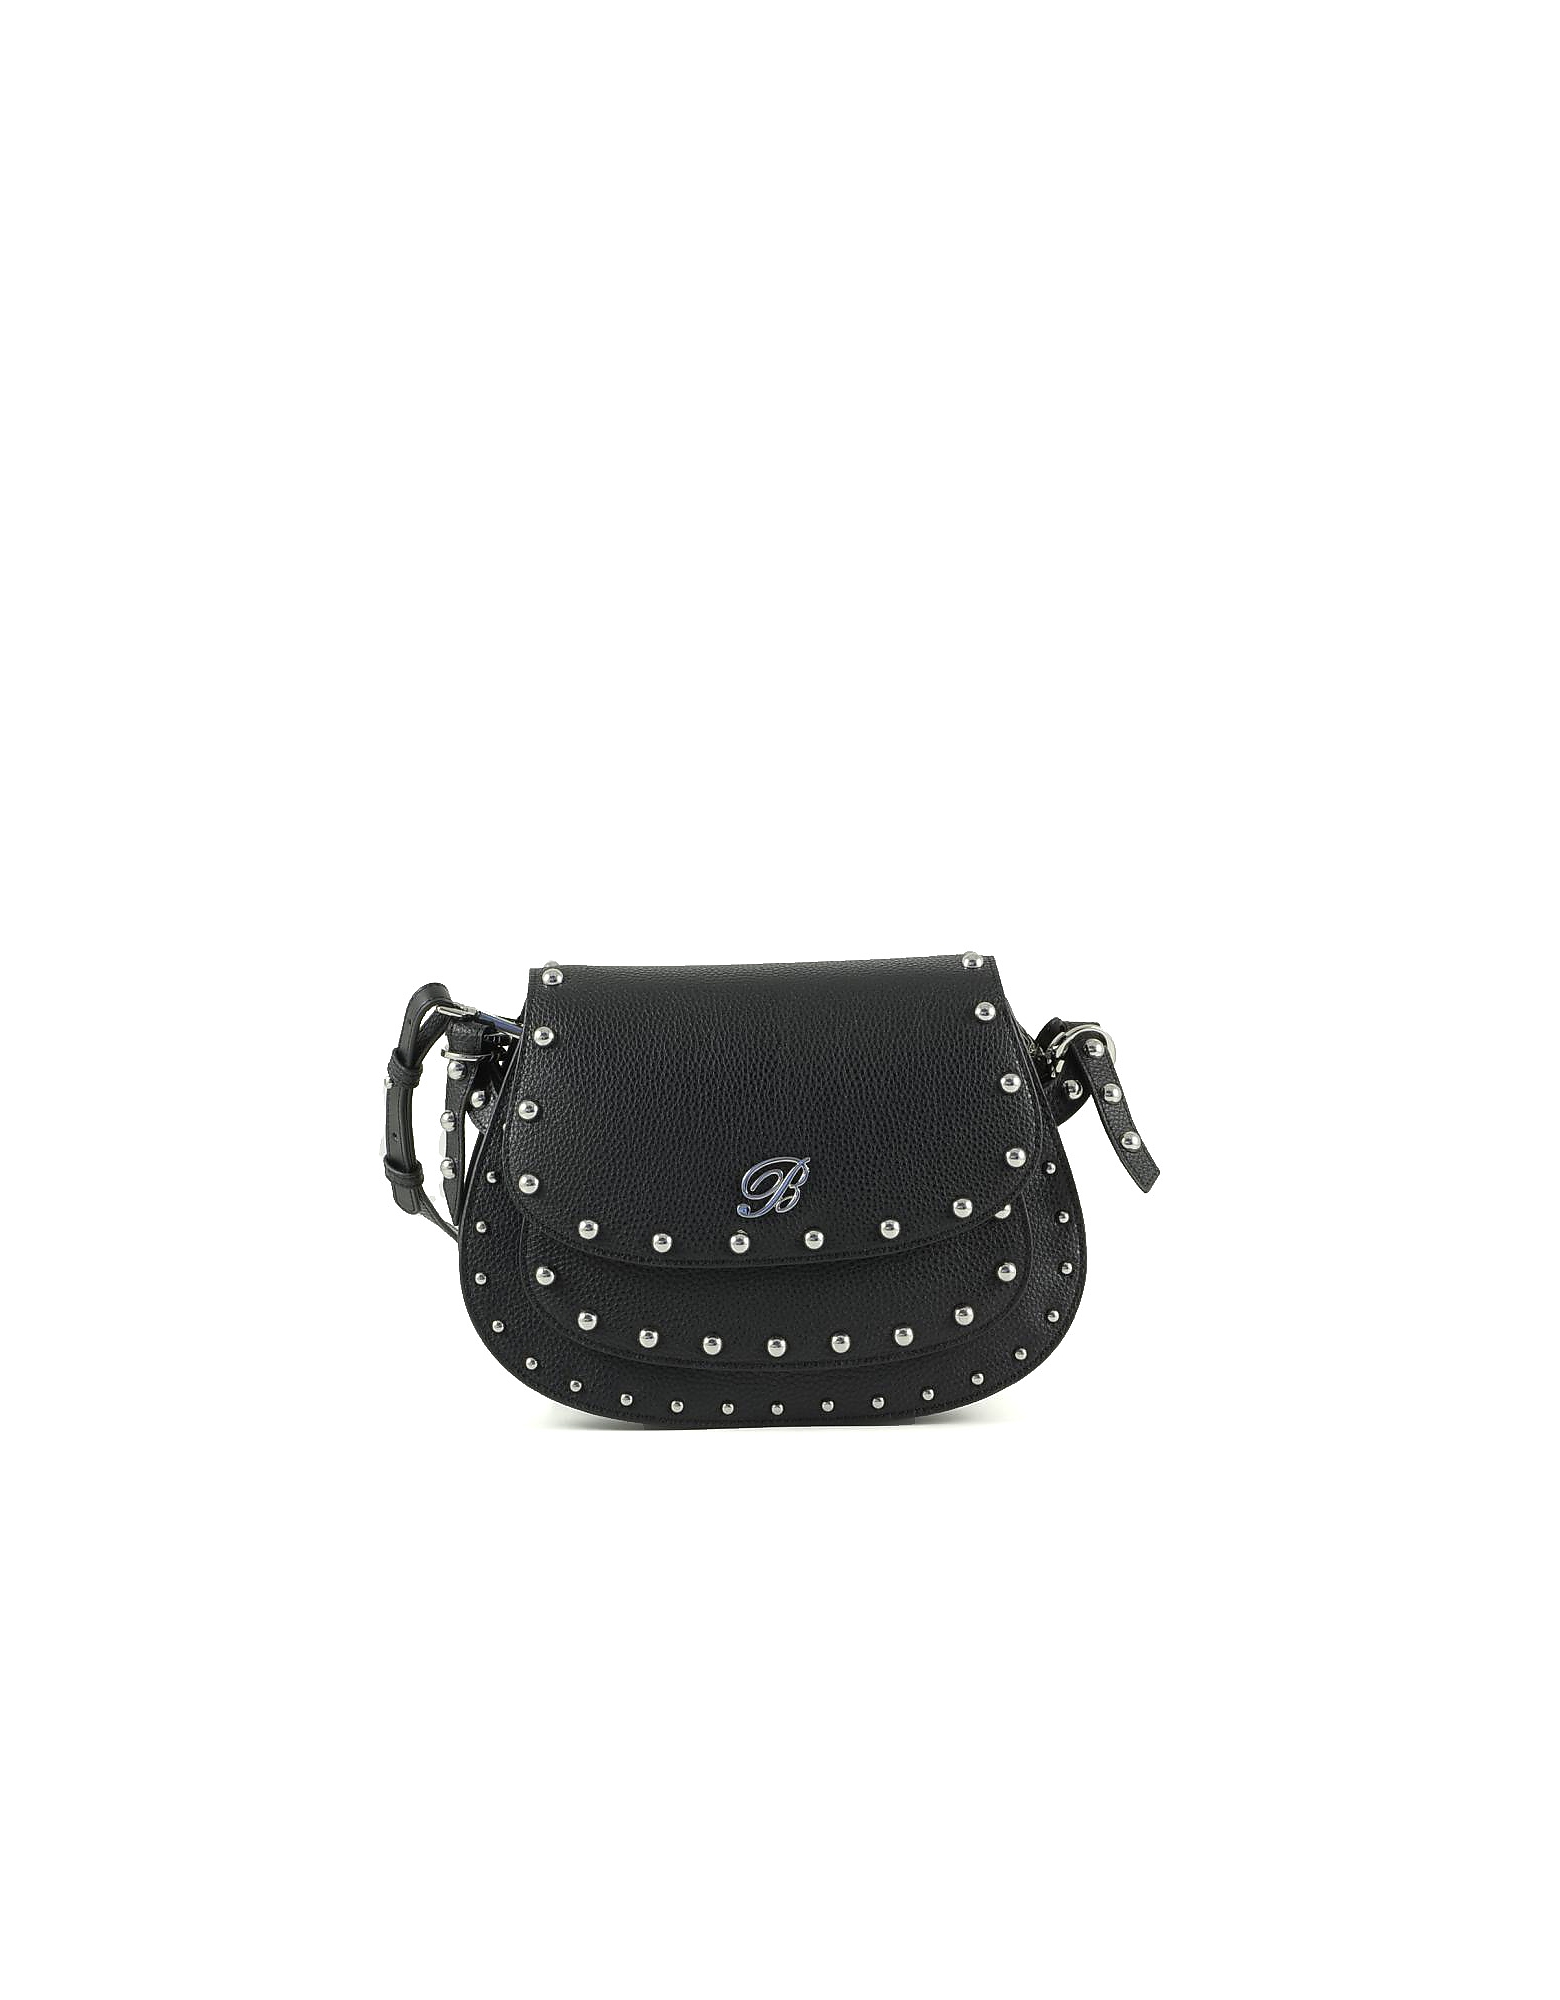 Blumarine Designer Handbags, Andrea Black Leather Crossbody Bag